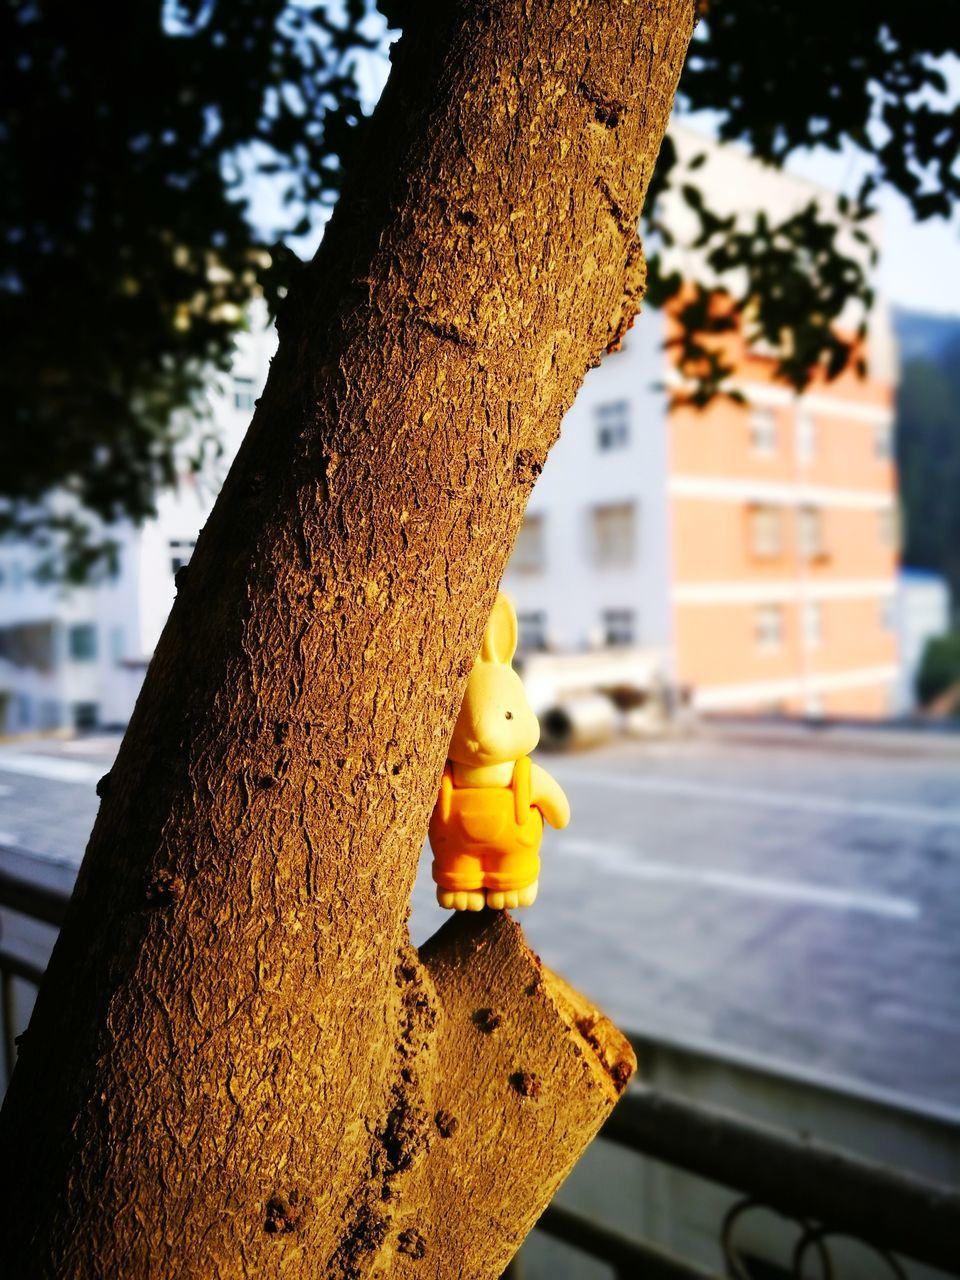 tree, focus on foreground, no people, tree trunk, yellow, outdoors, day, close-up, architecture, built structure, building exterior, nature, sky